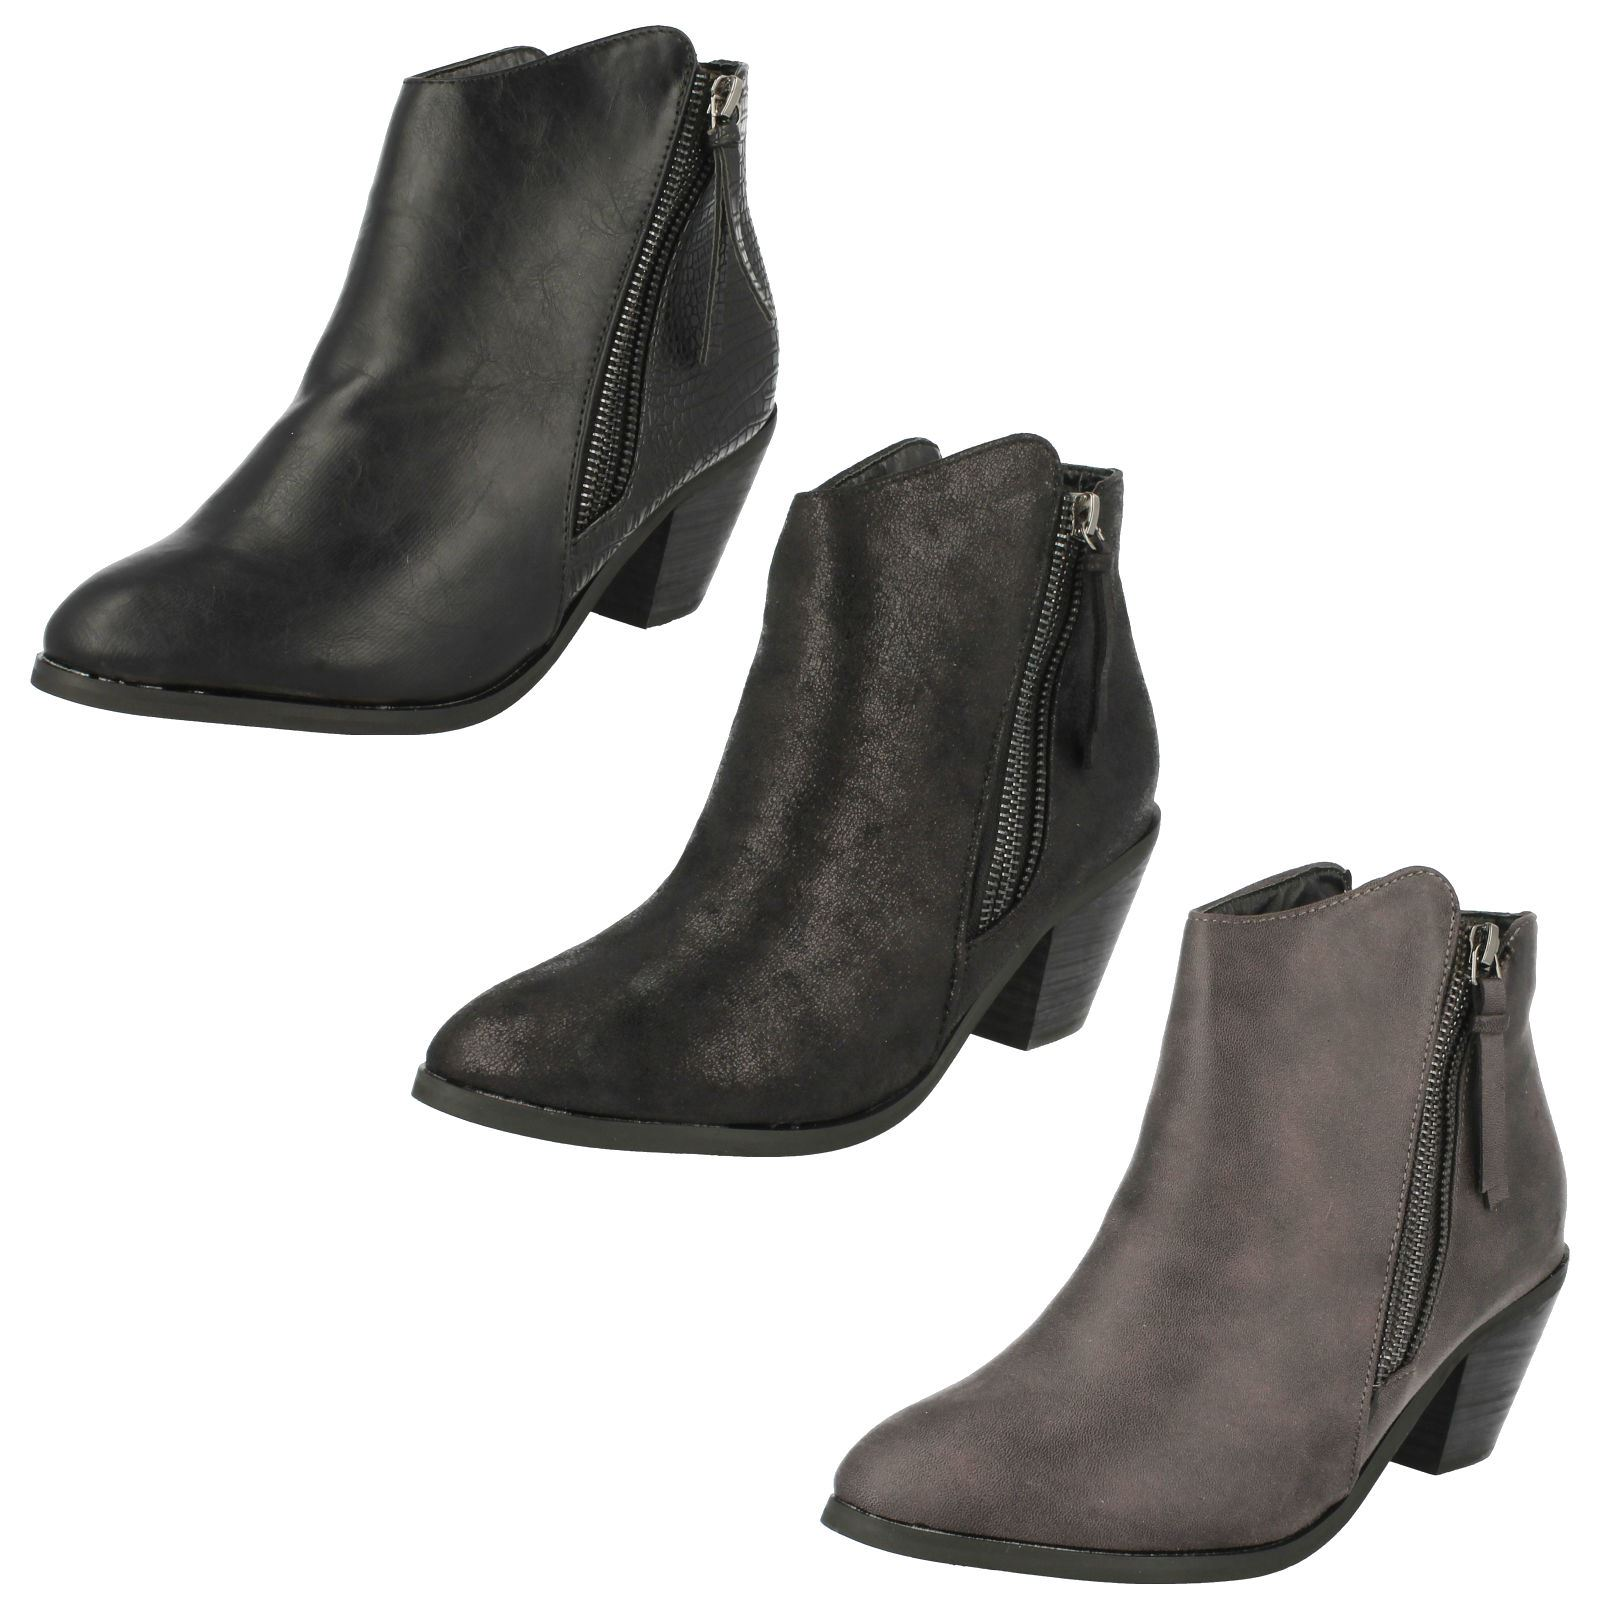 Ladies Spot On Cowboy Style Ankle Boots with Zip Detail